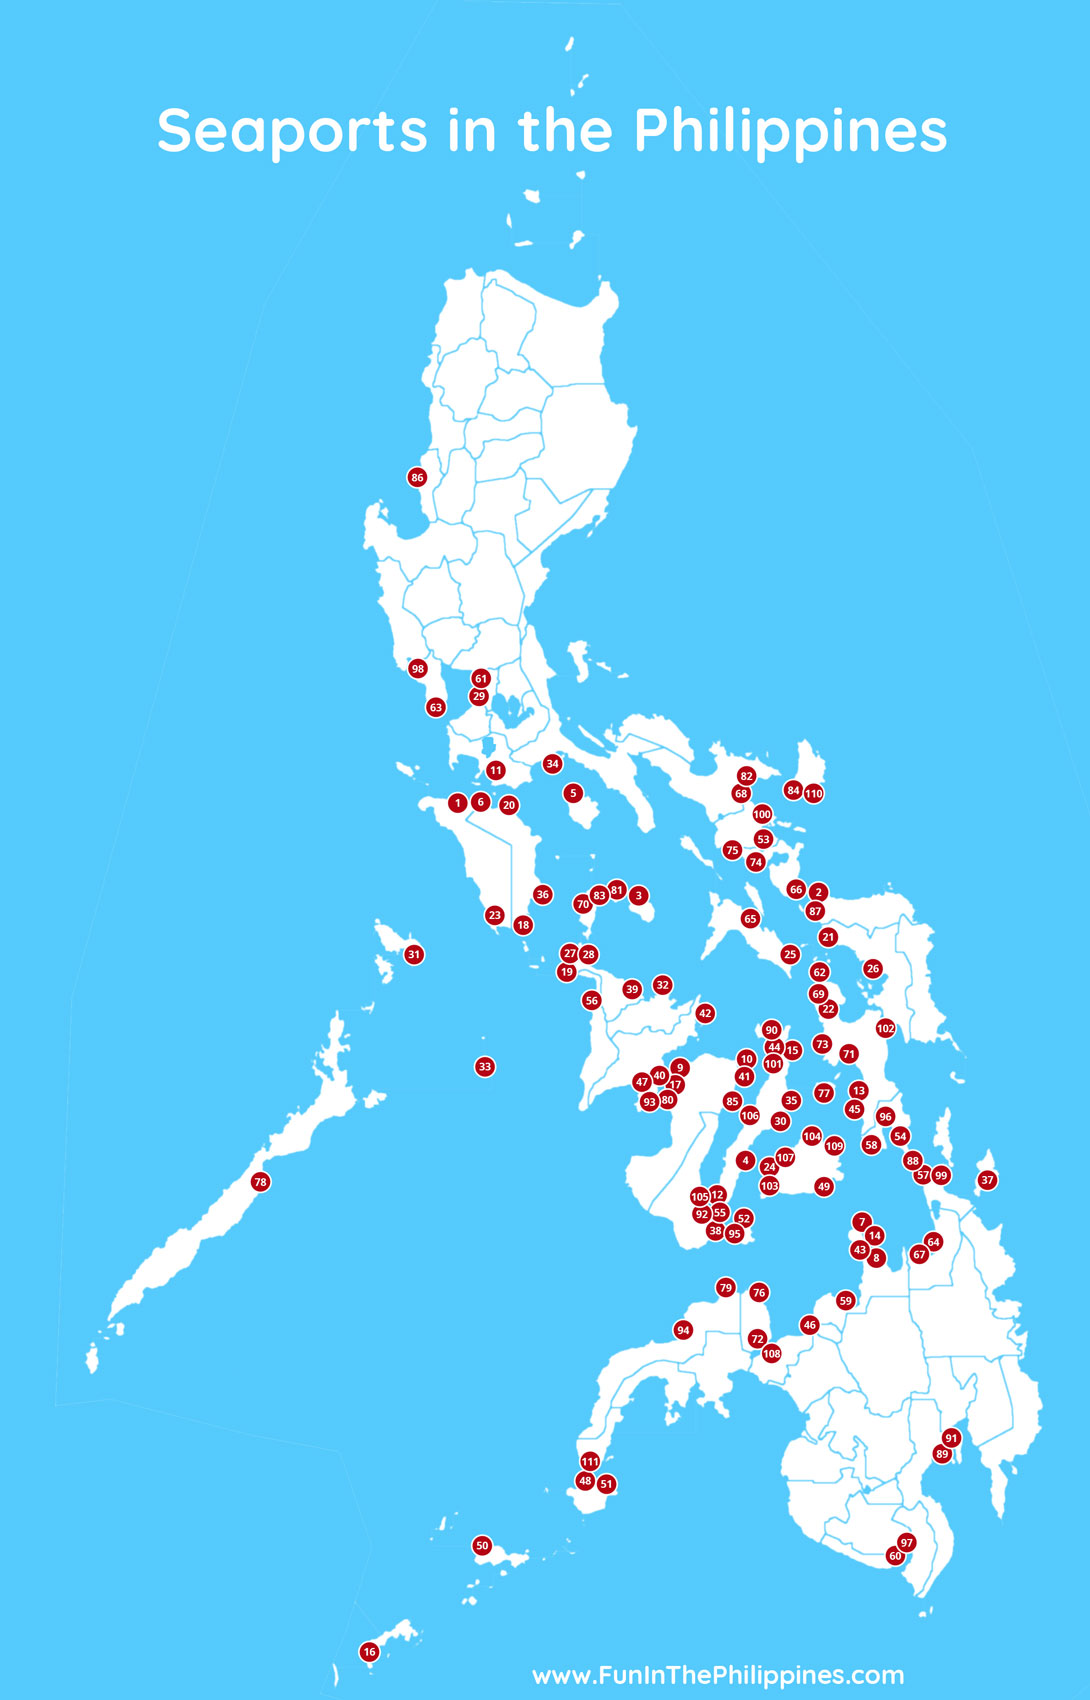 Seaports in the Philippines